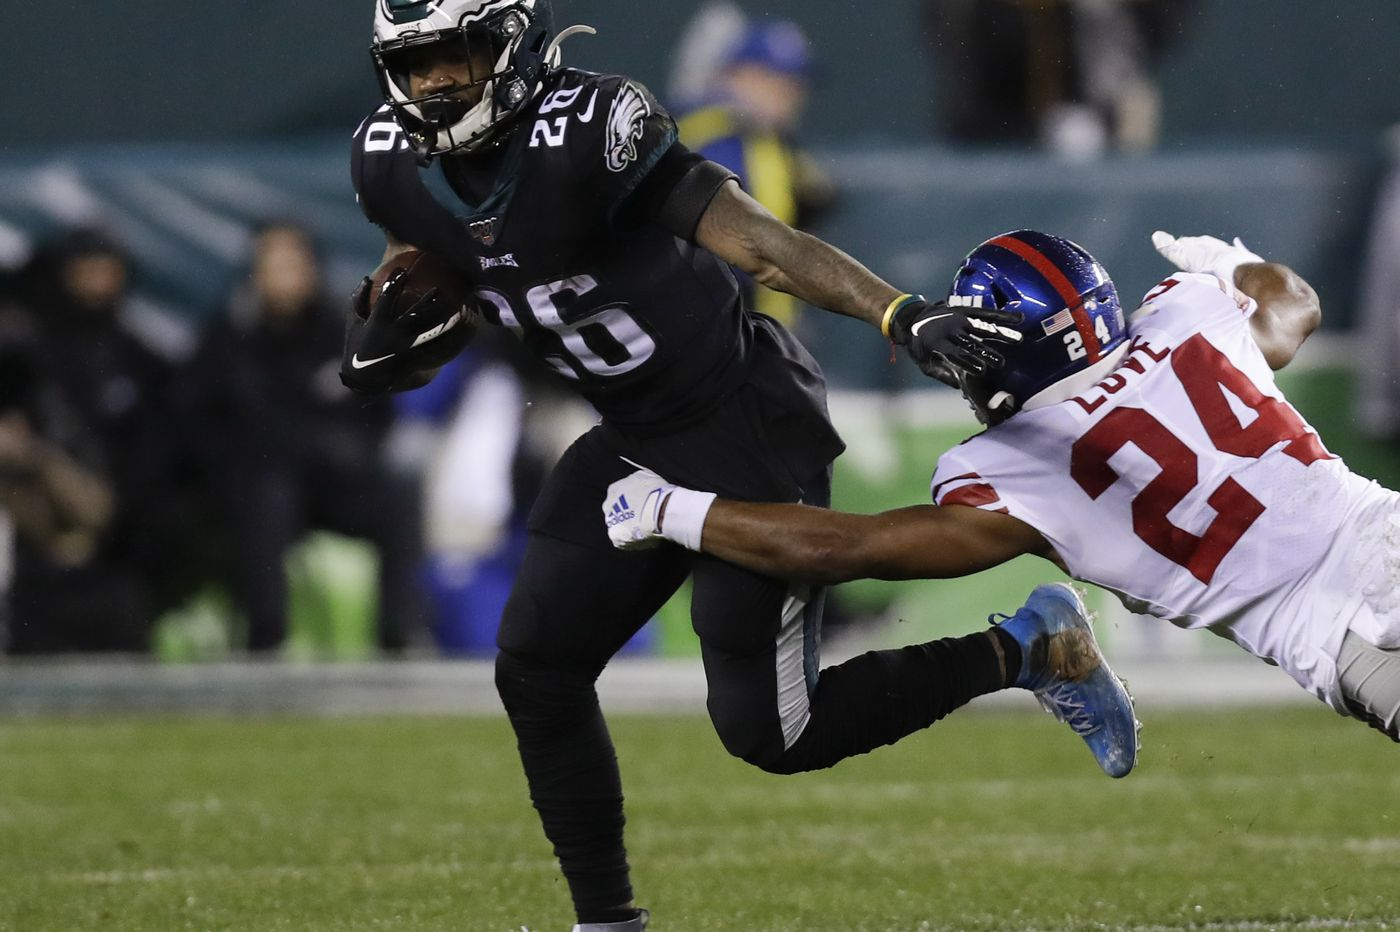 Eagles-Giants: Beat writers make their predictions on Sunday's NFC East battle